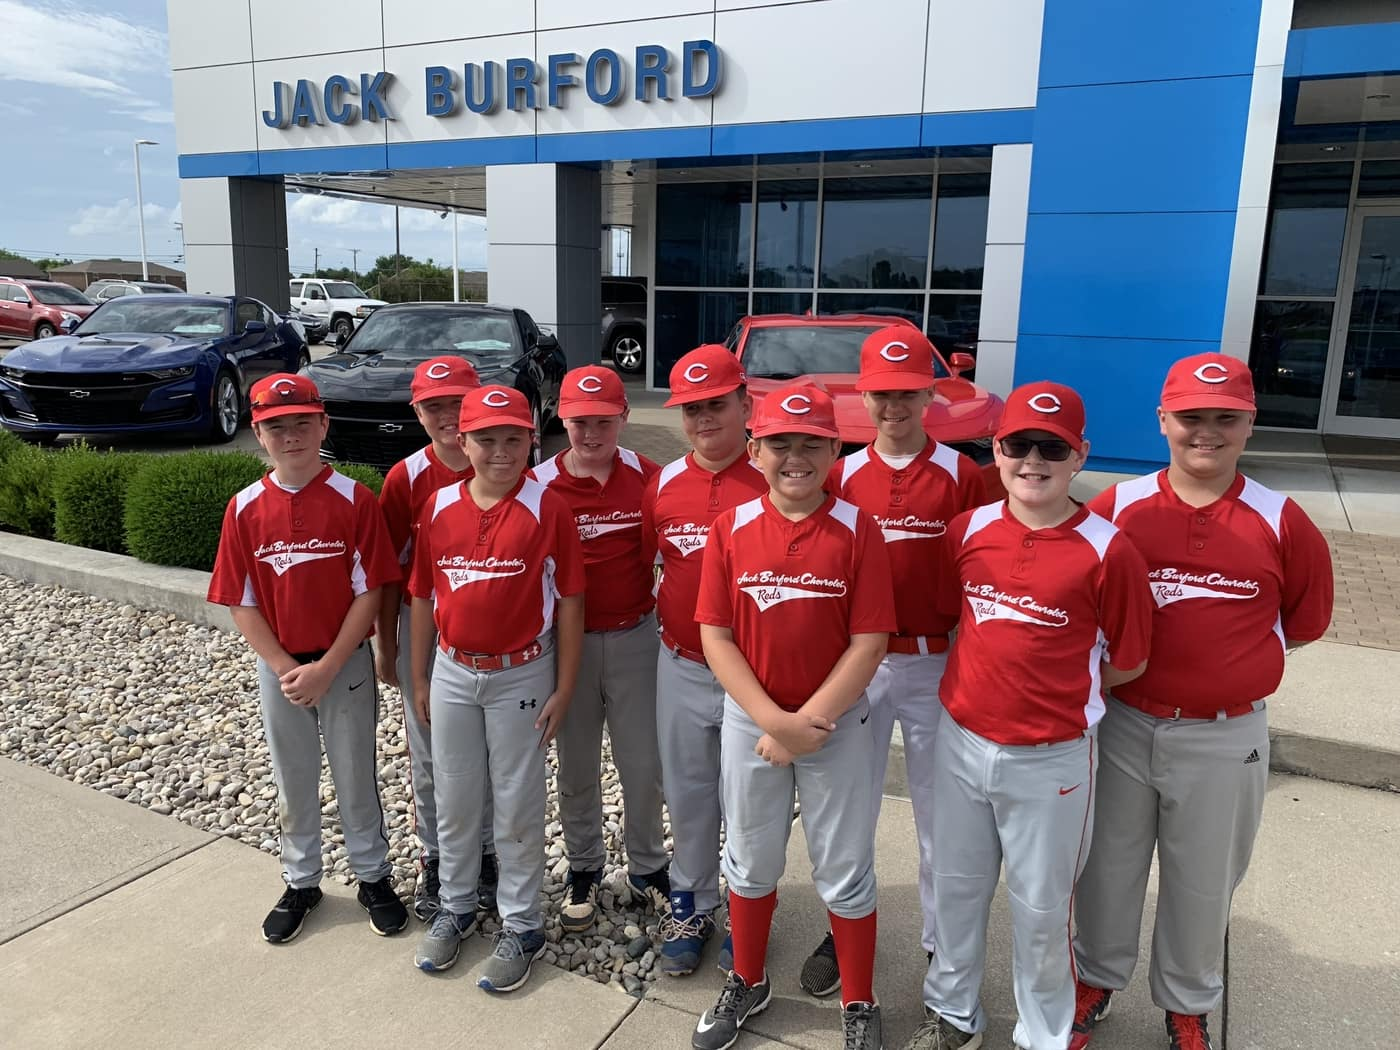 Jack Burford supports the Richmond Little League